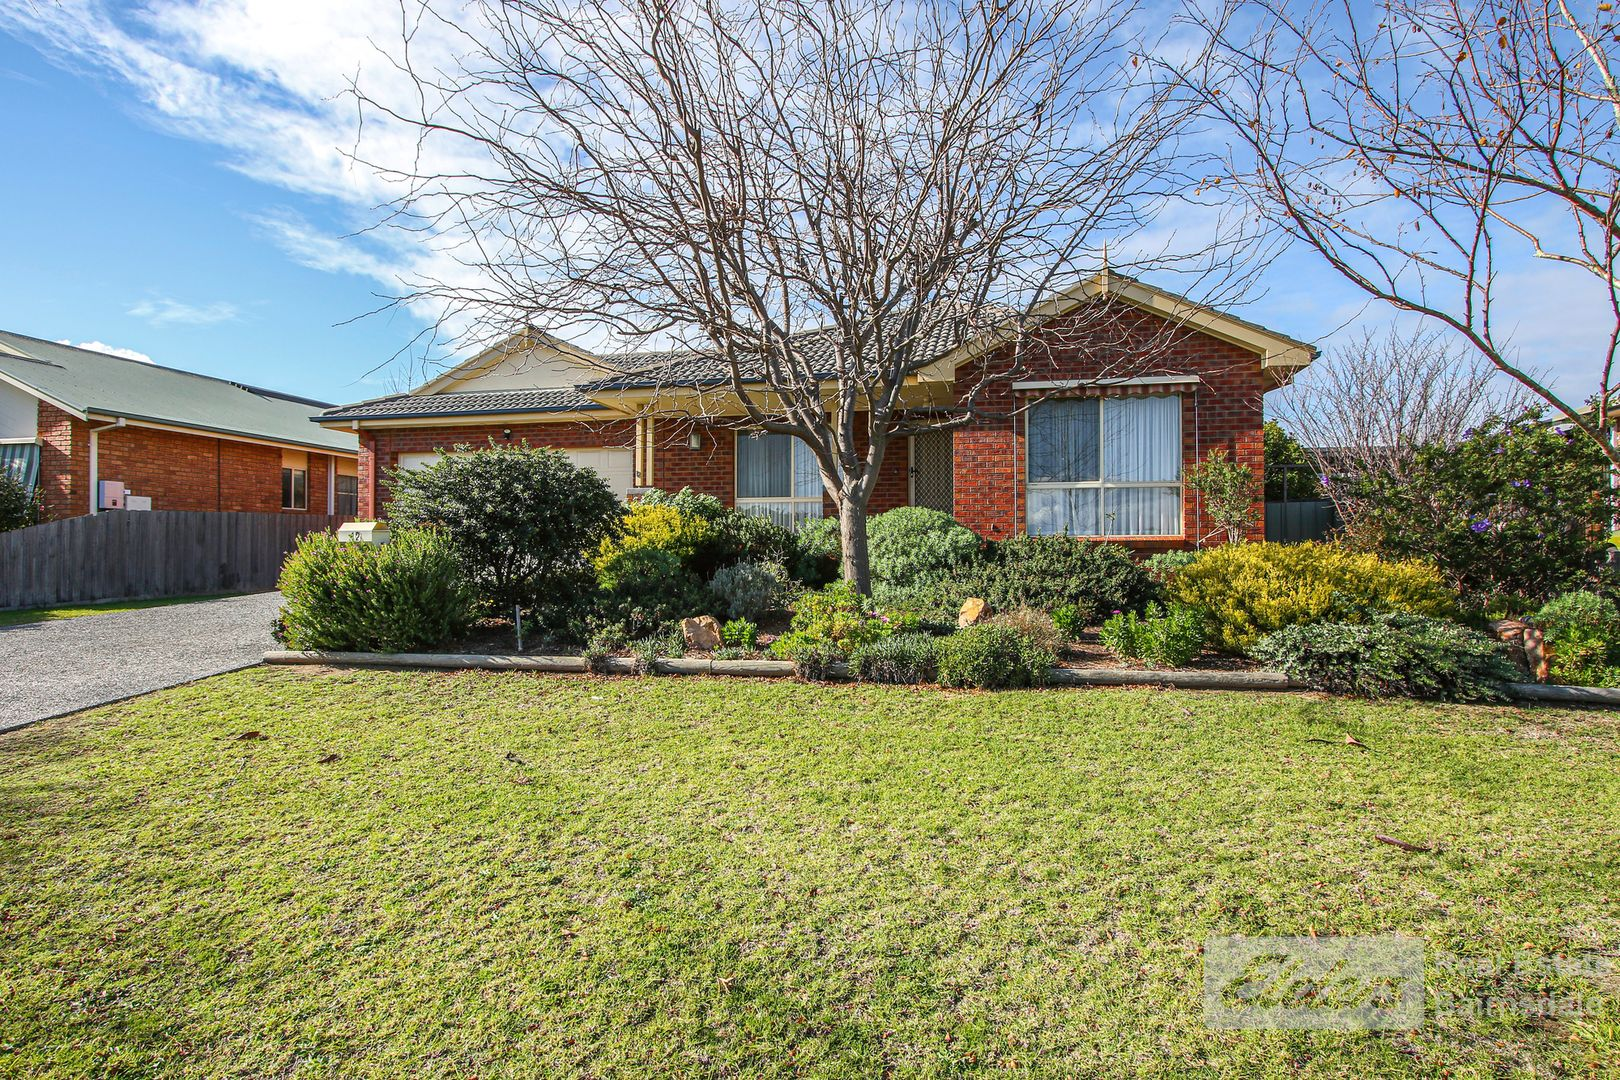 12 Birchwood Court, Bairnsdale VIC 3875, Image 0